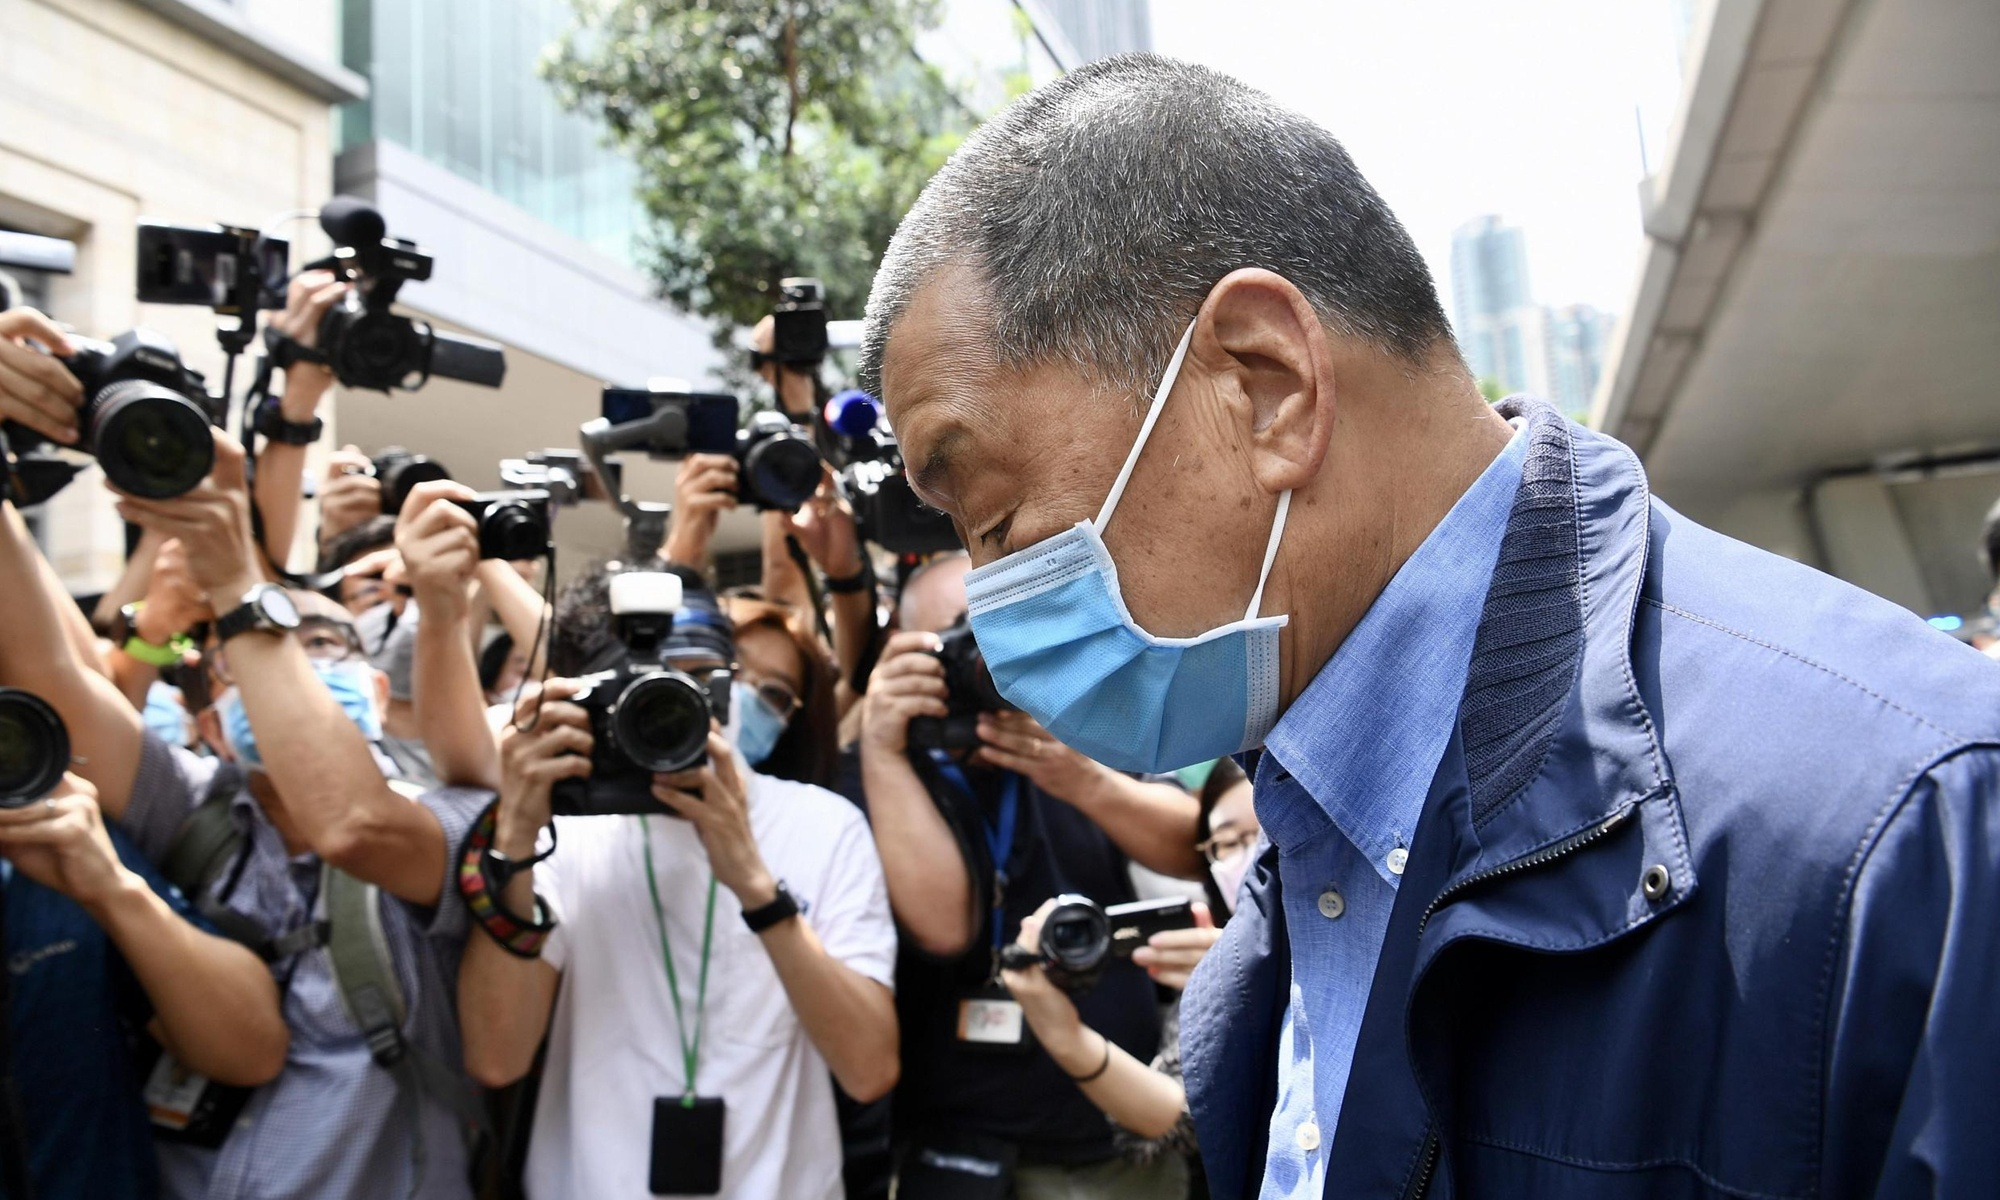 Chinese embassy urges UK to stop unwarranted claims on Jimmy Lai case